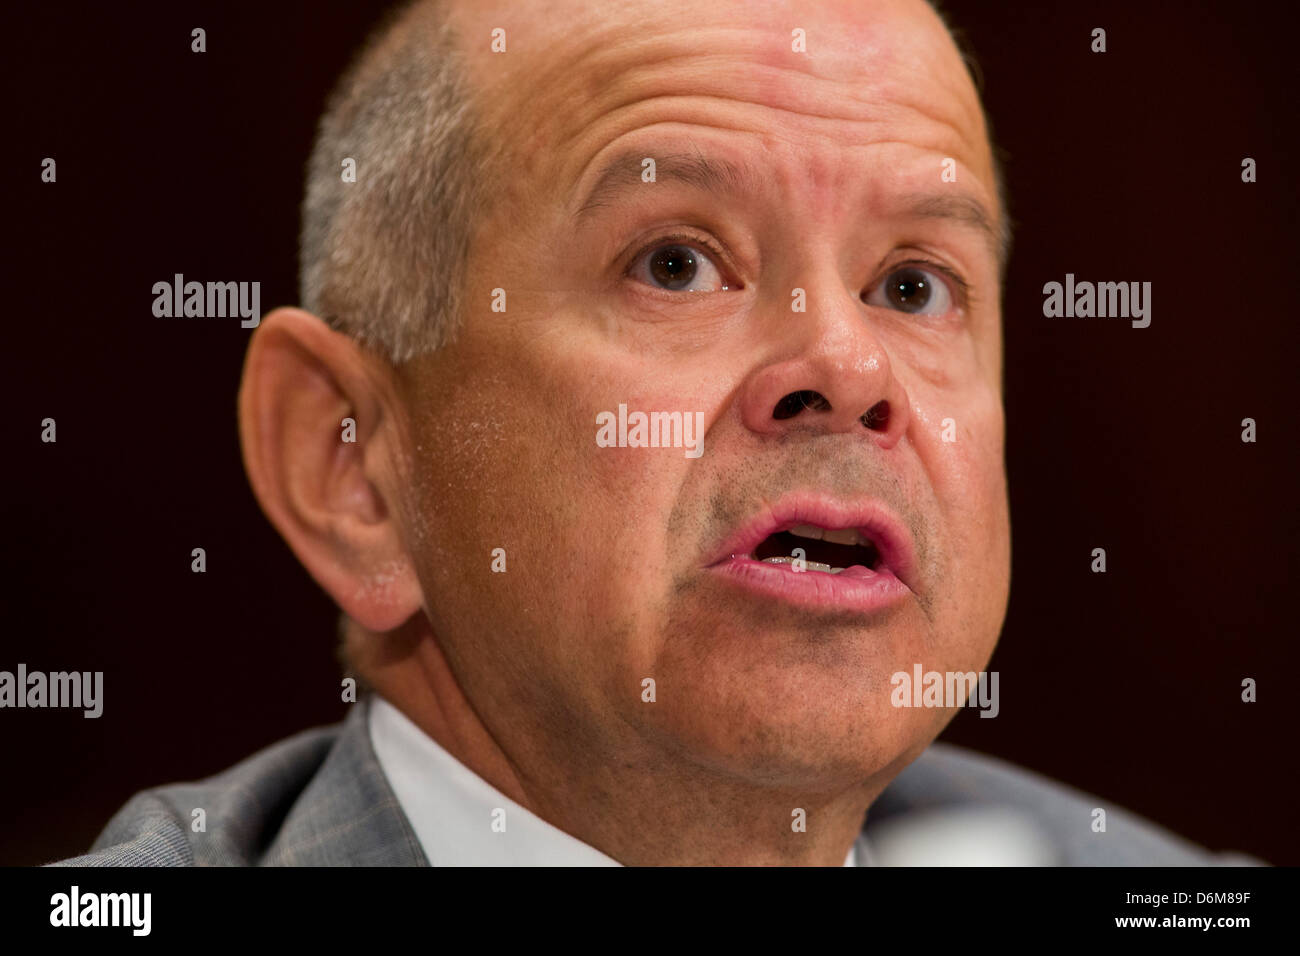 Michael Huerta, administrator of the Federal Aviation Administration (FAA). - Stock Image